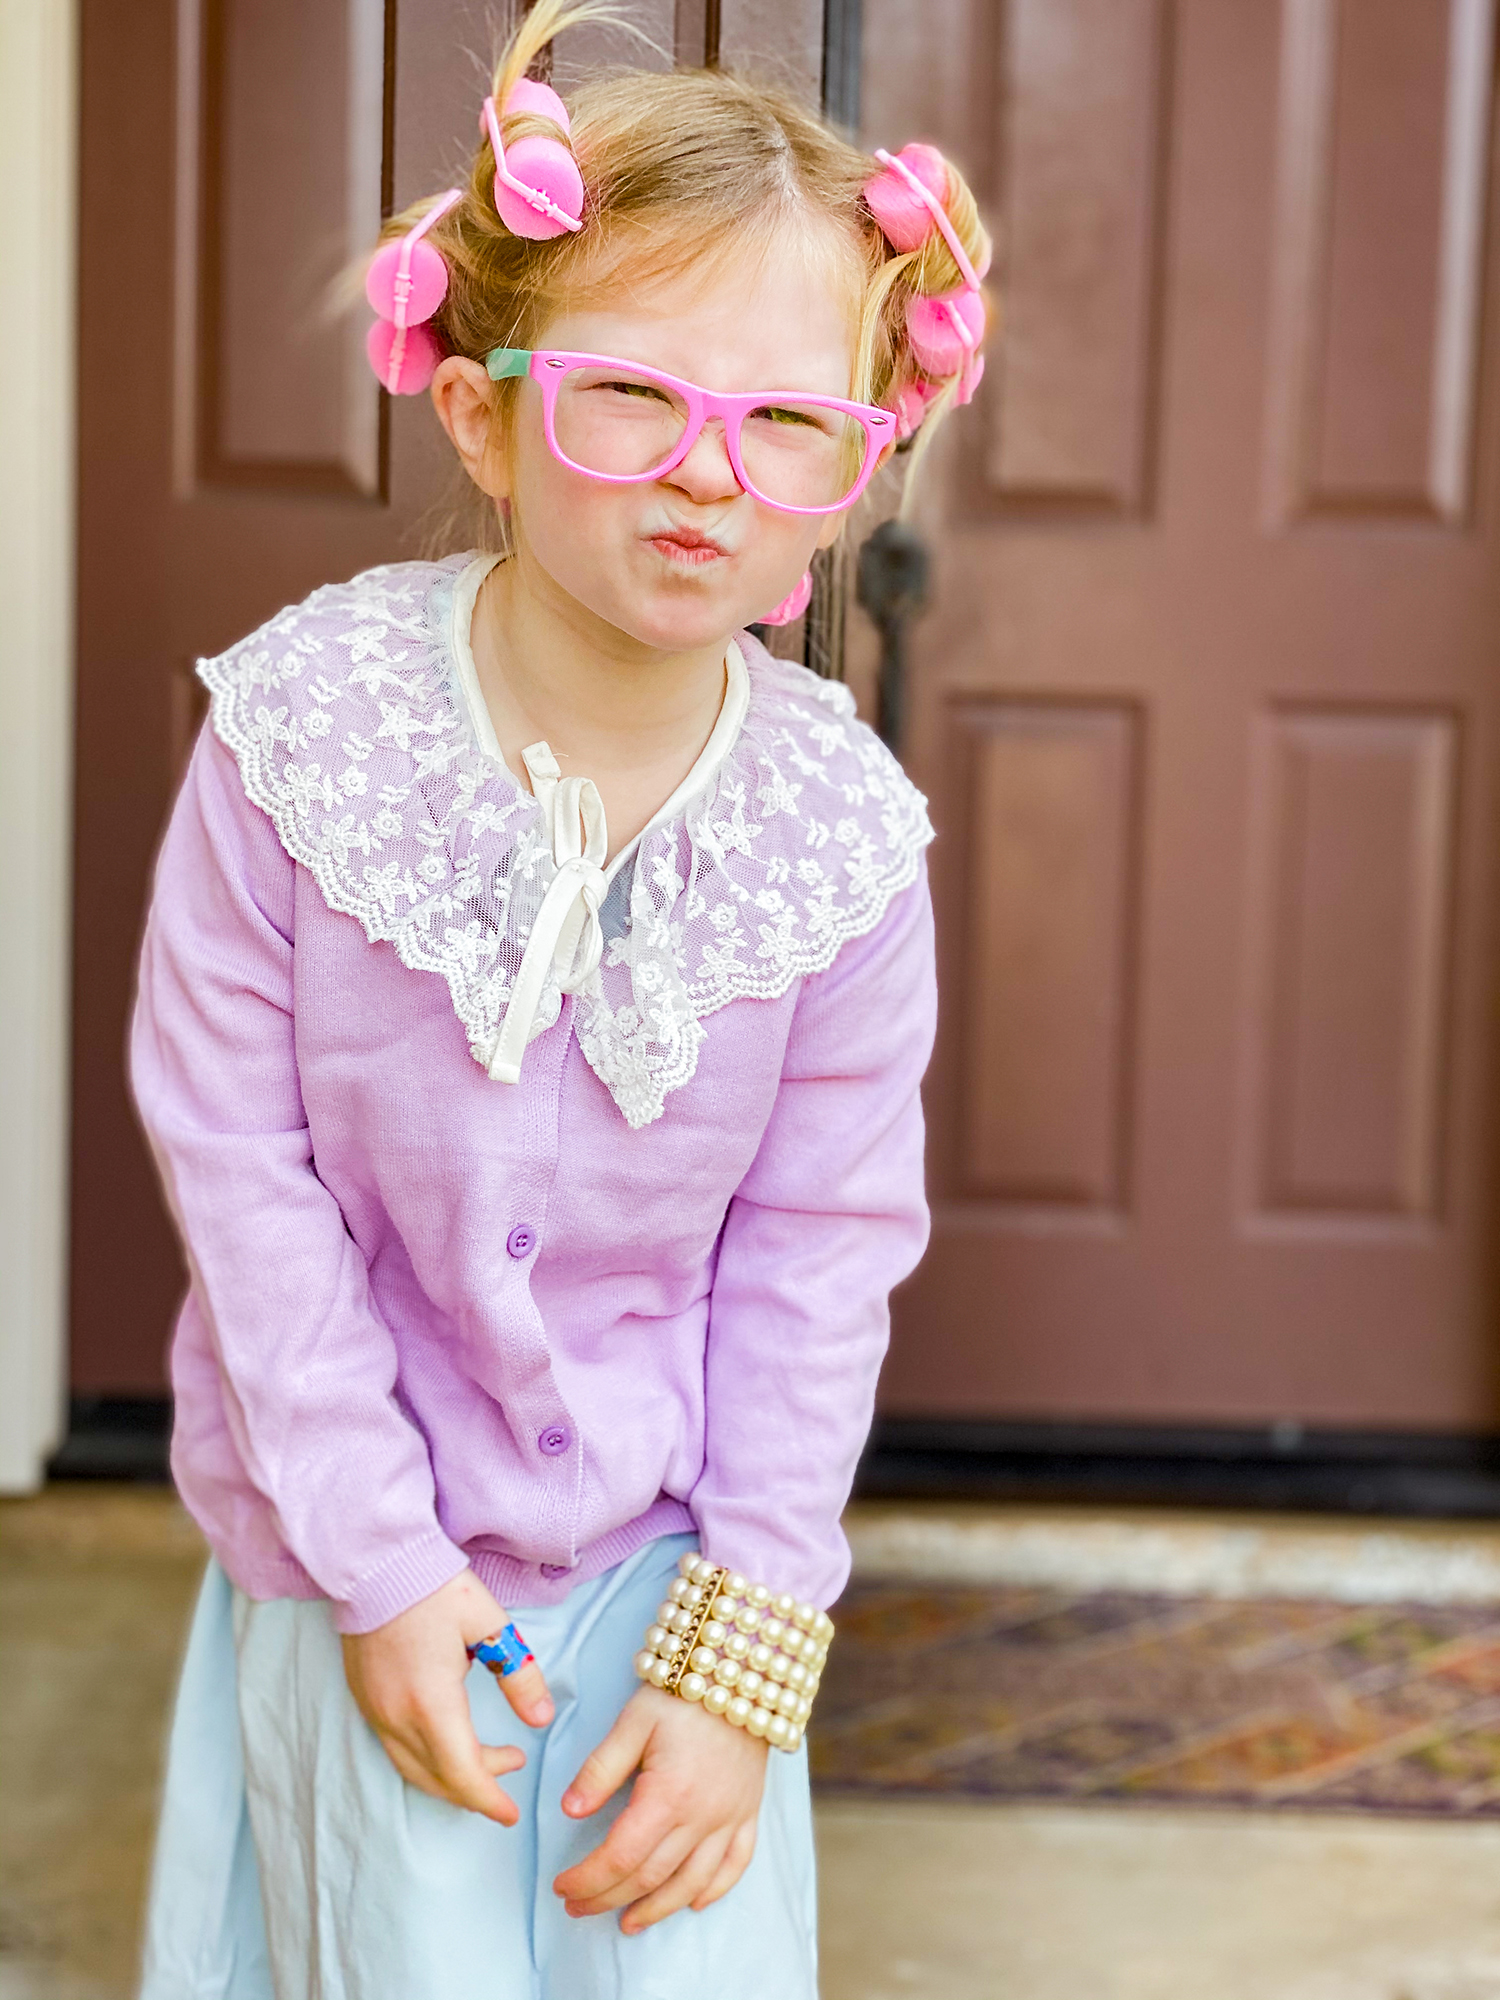 Is the 100th day of school approaching? This 100th day of school outfit is easy to put together and the perfect costume to wear to school!